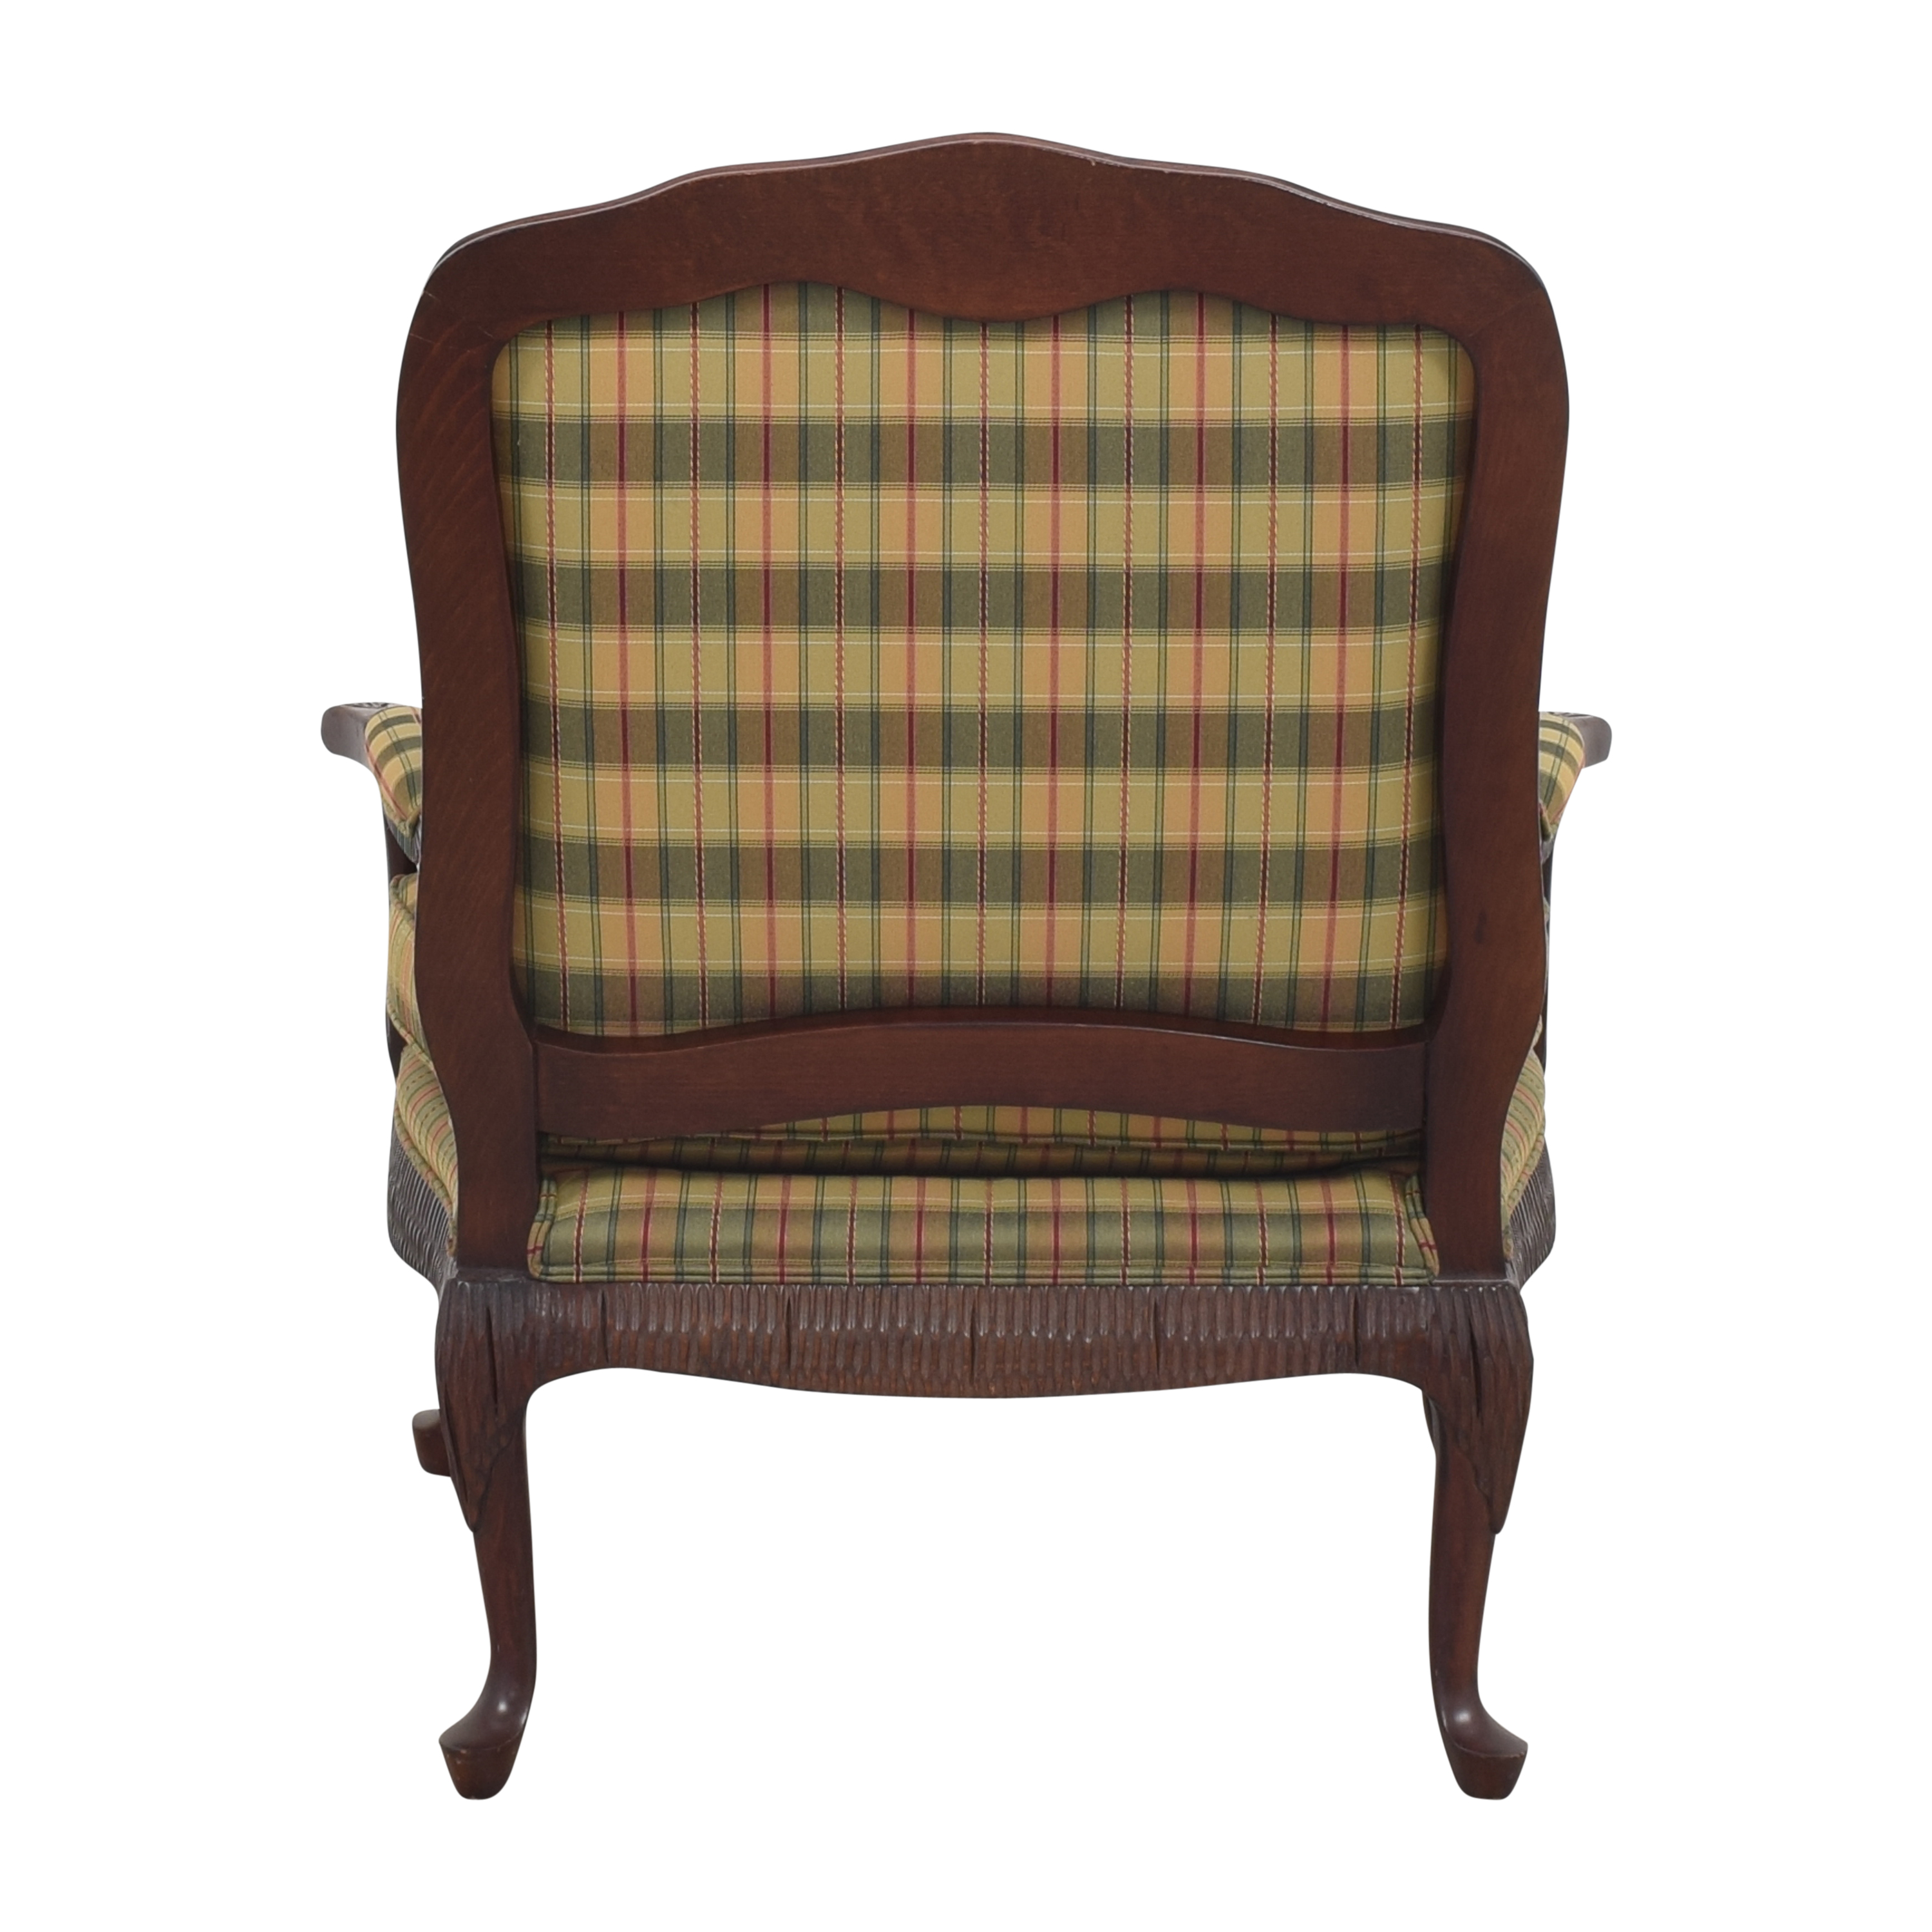 buy Lexington Furniture Upholstered Accent Chair Lexington Furniture Accent Chairs